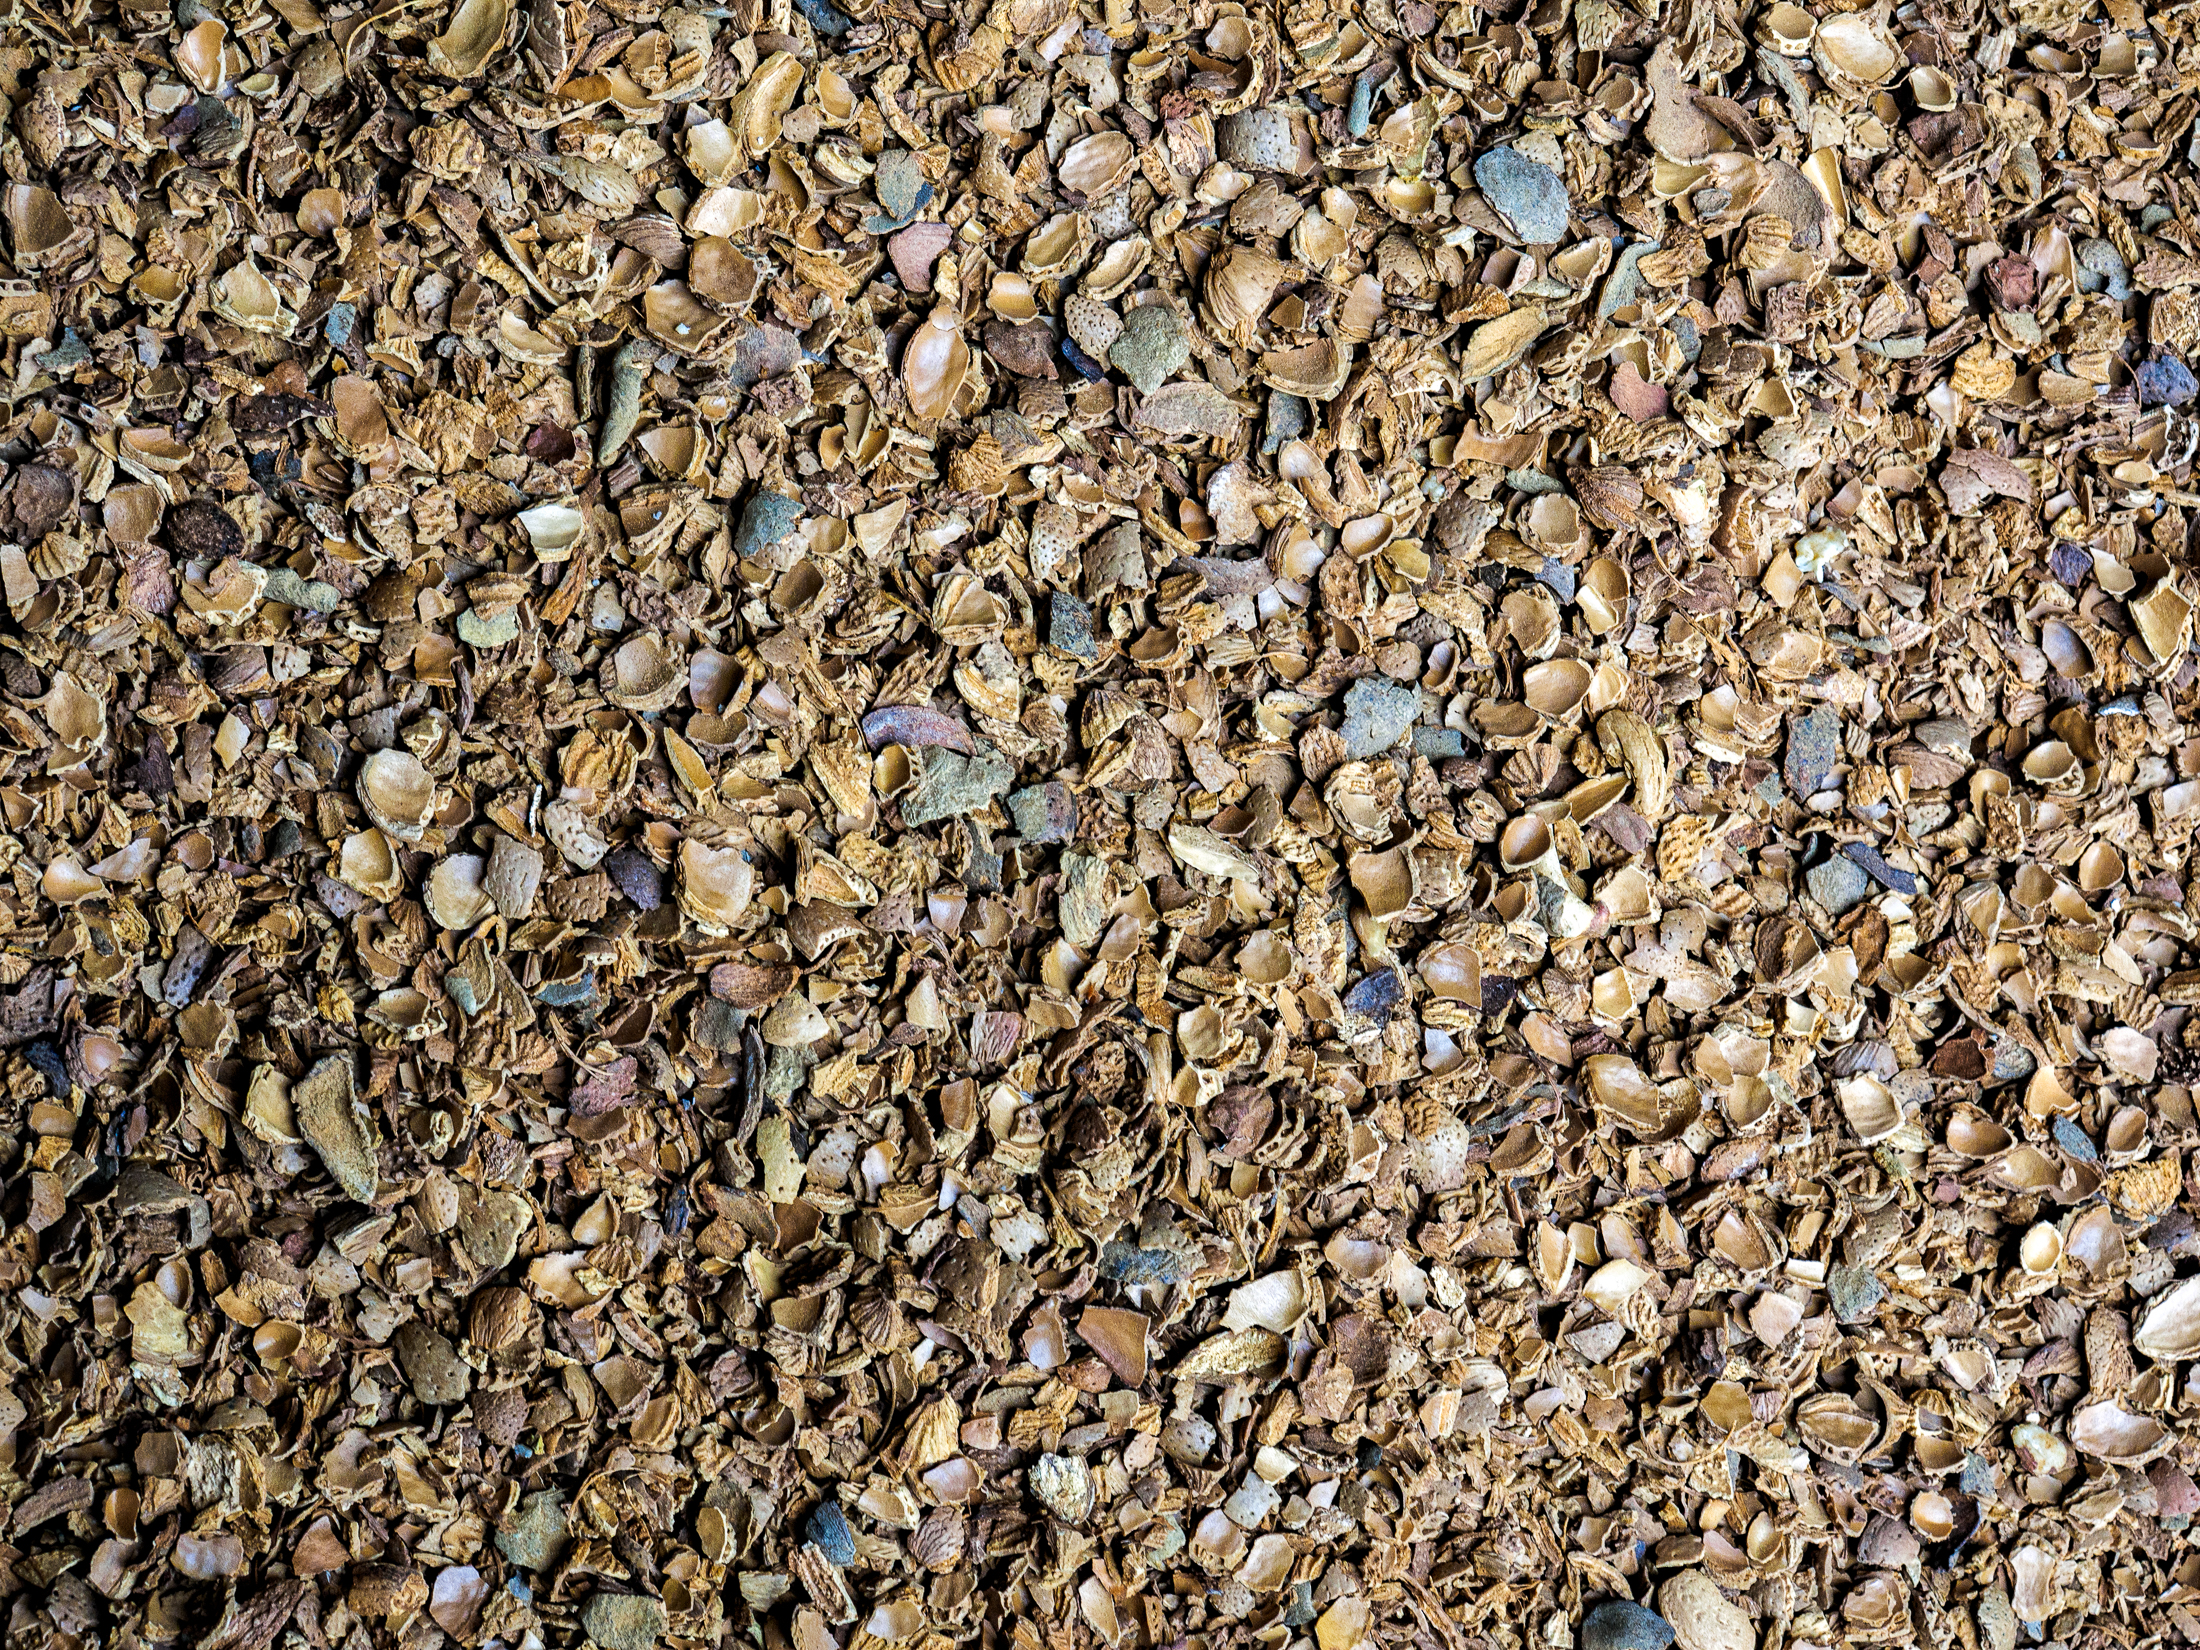 Crushed almond shells used in biomass boilers